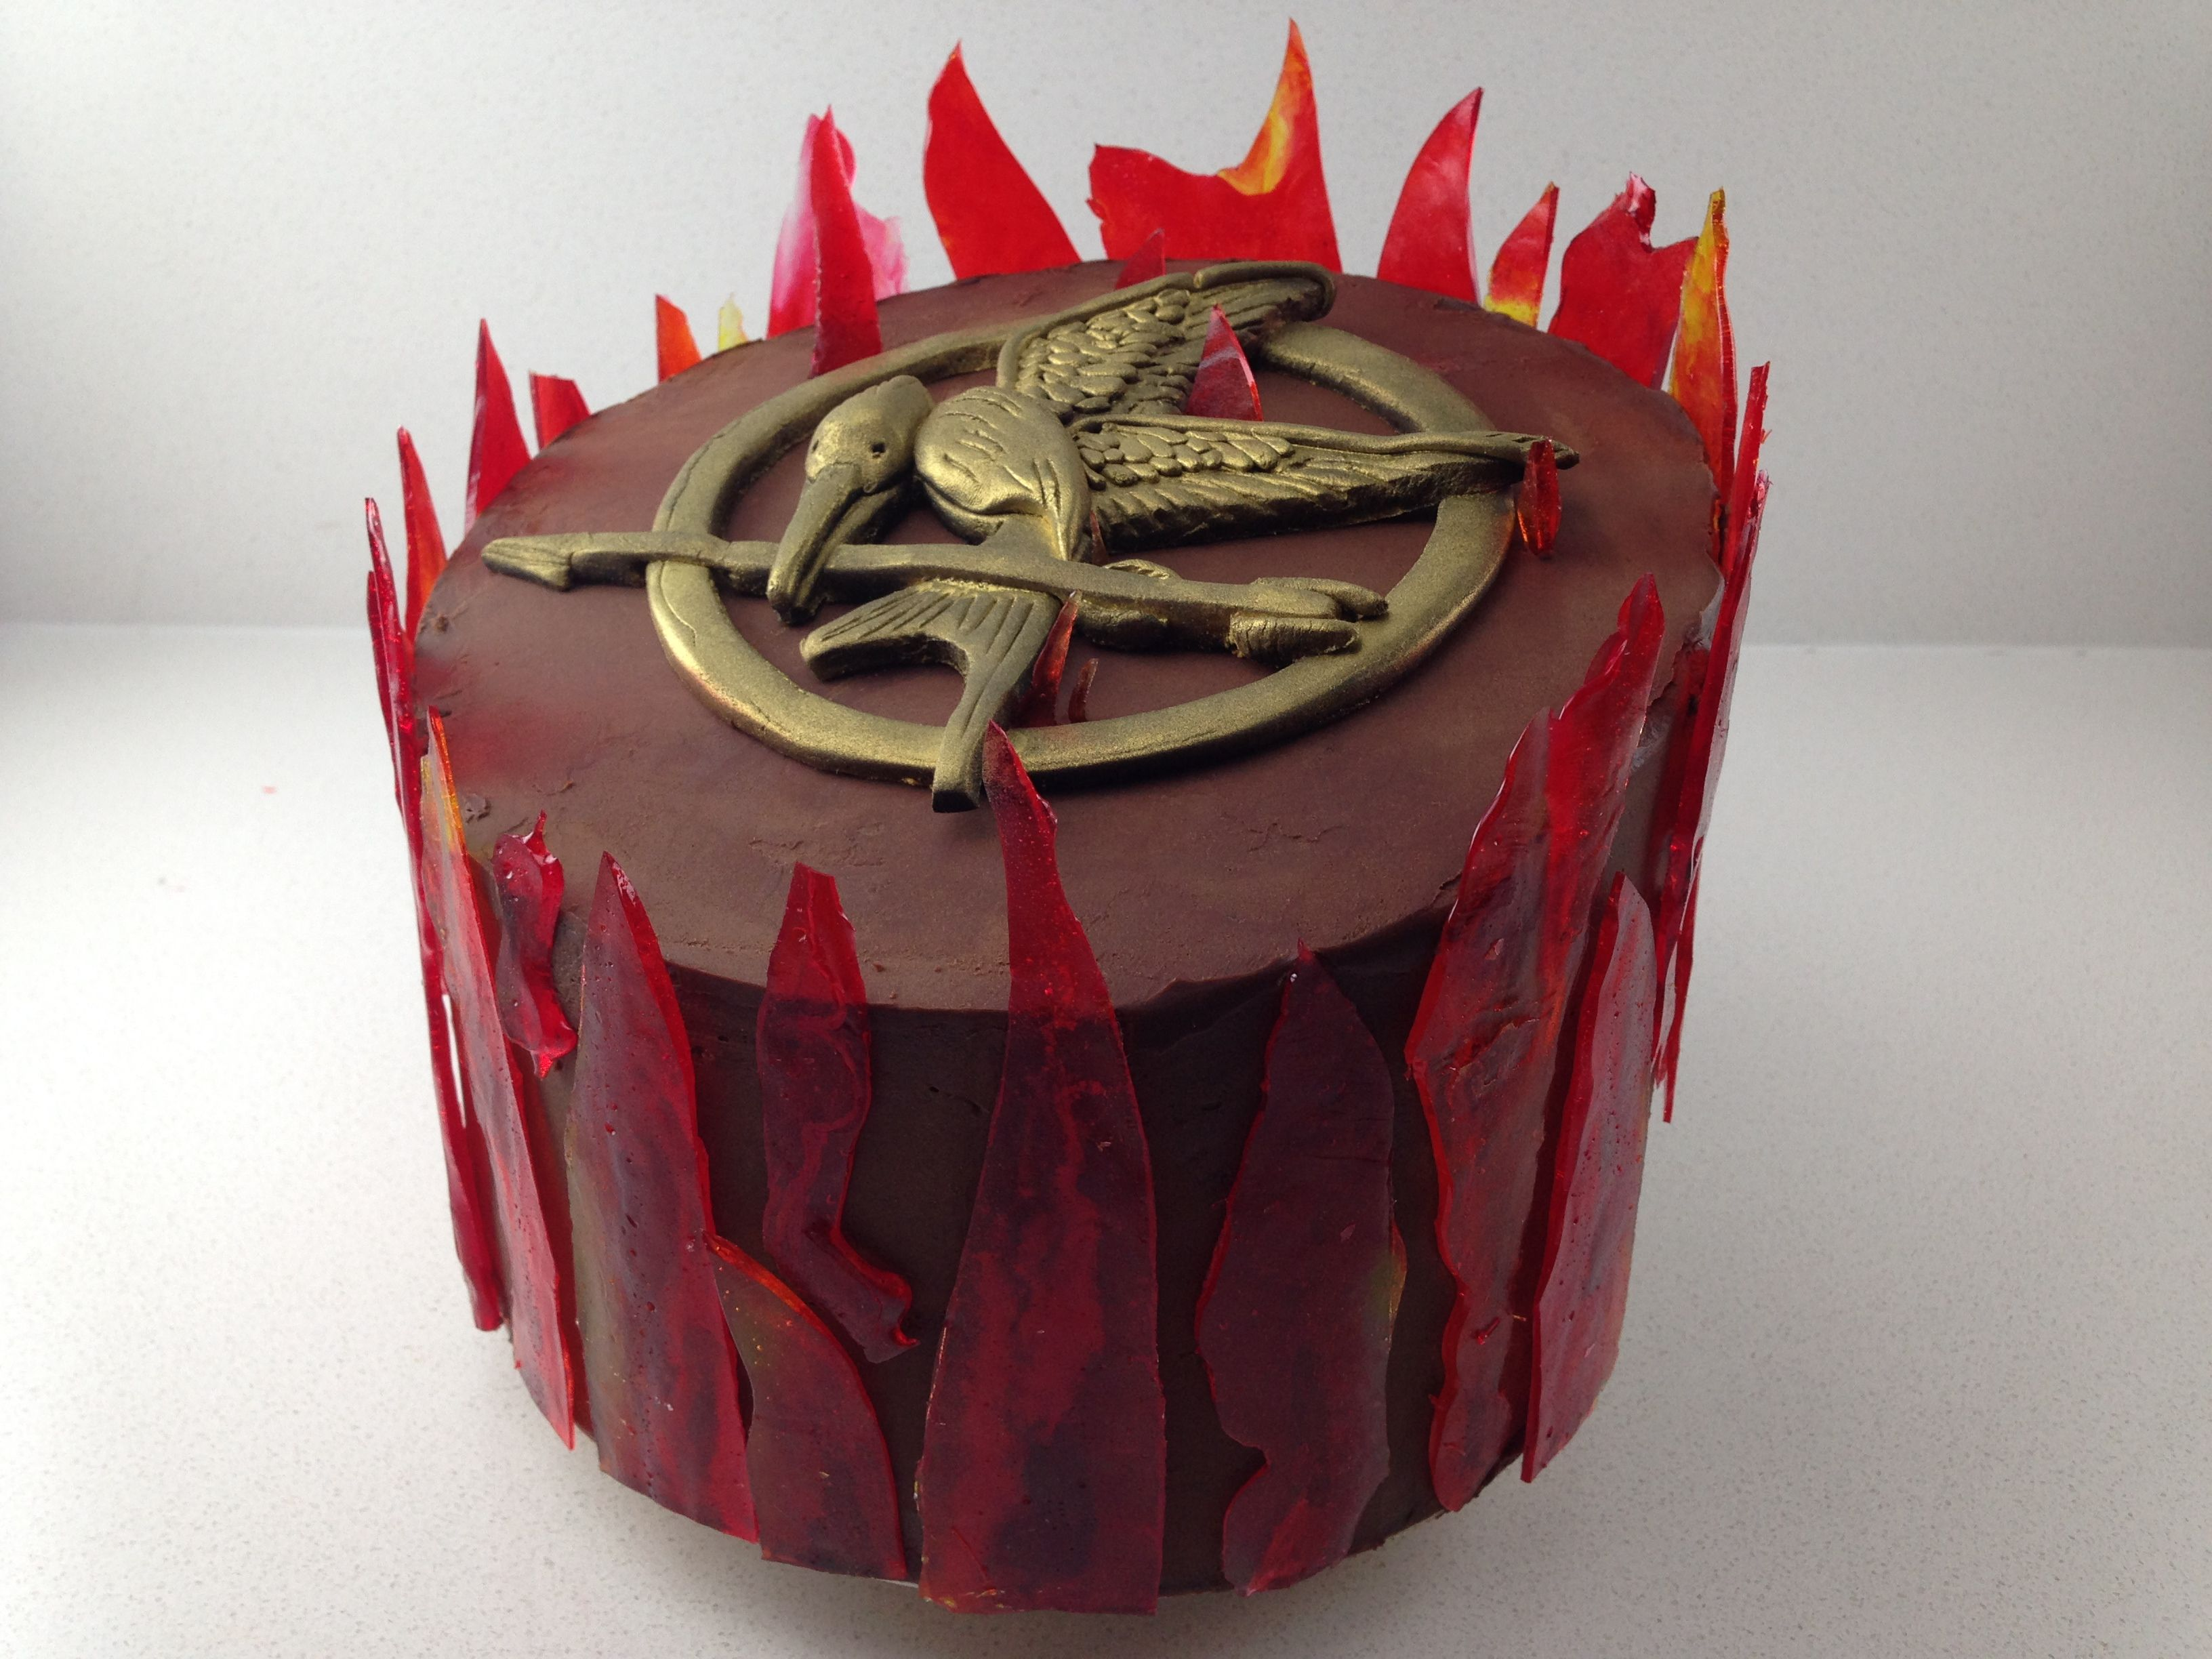 Groovy Howtocookthat Cakes Dessert Chocolate Hunger Games Cake Funny Birthday Cards Online Elaedamsfinfo